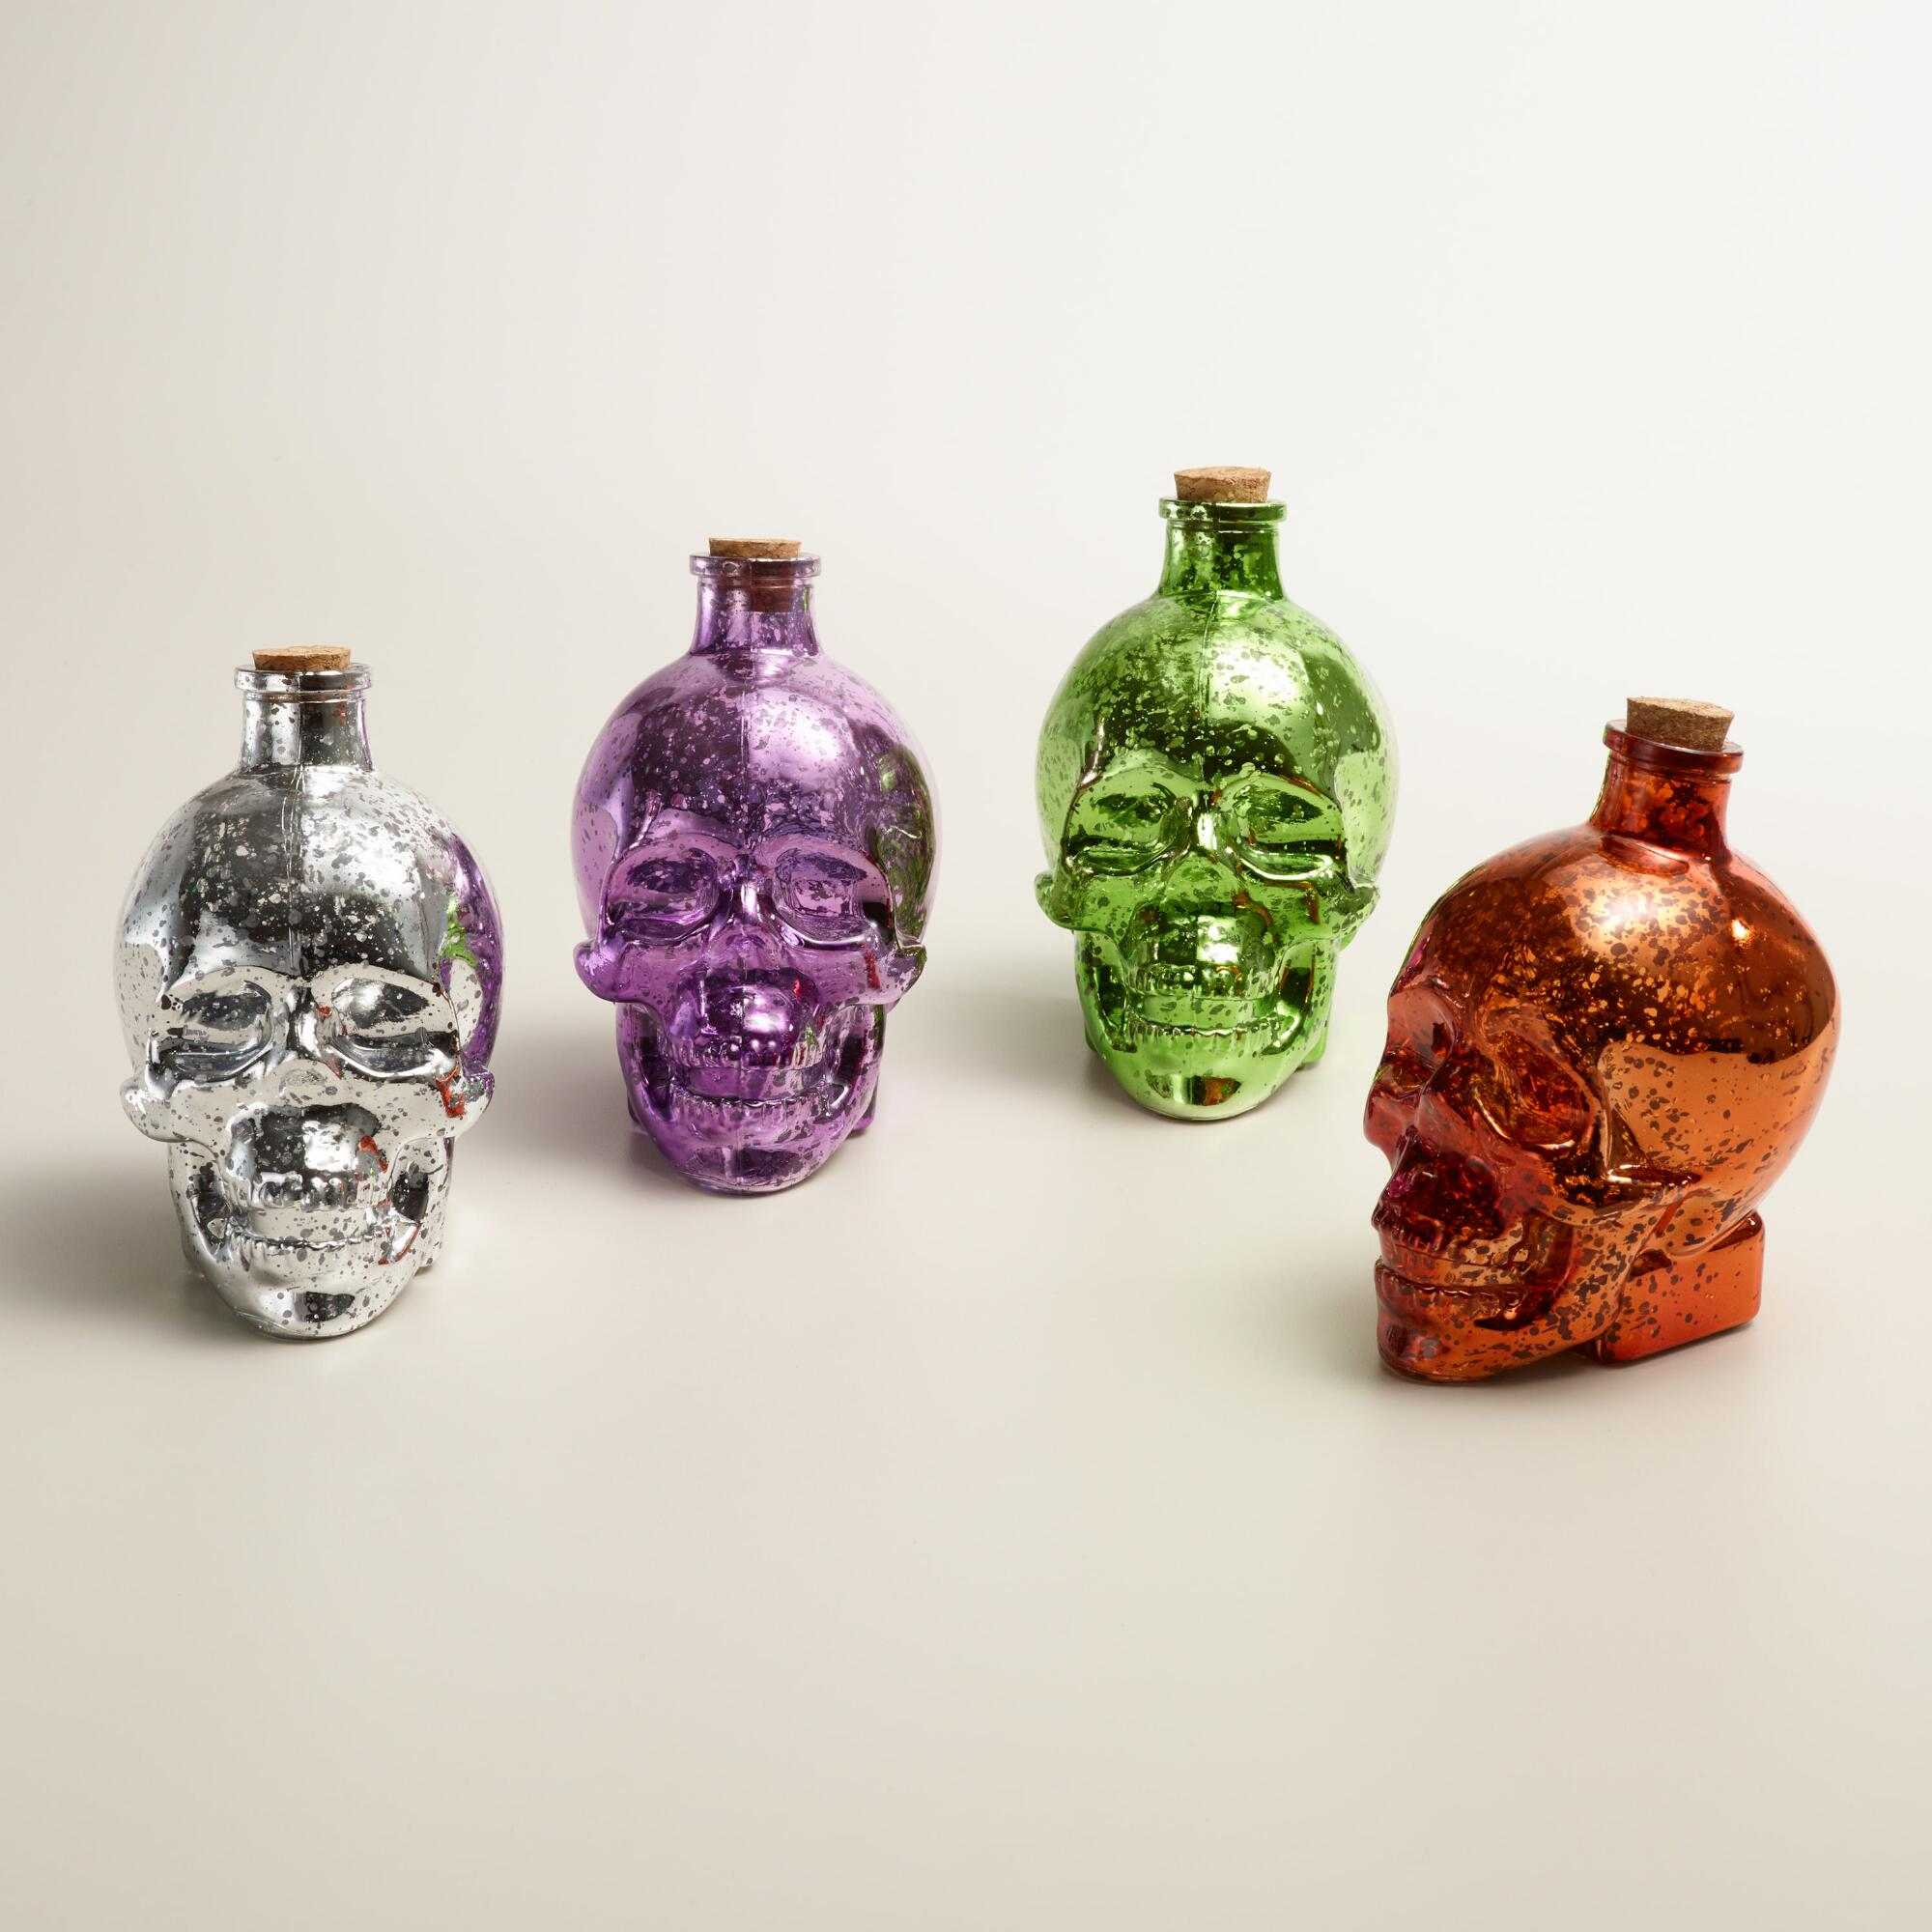 Mercury Glass Skull Bottle Decor Set Of 4 World Market